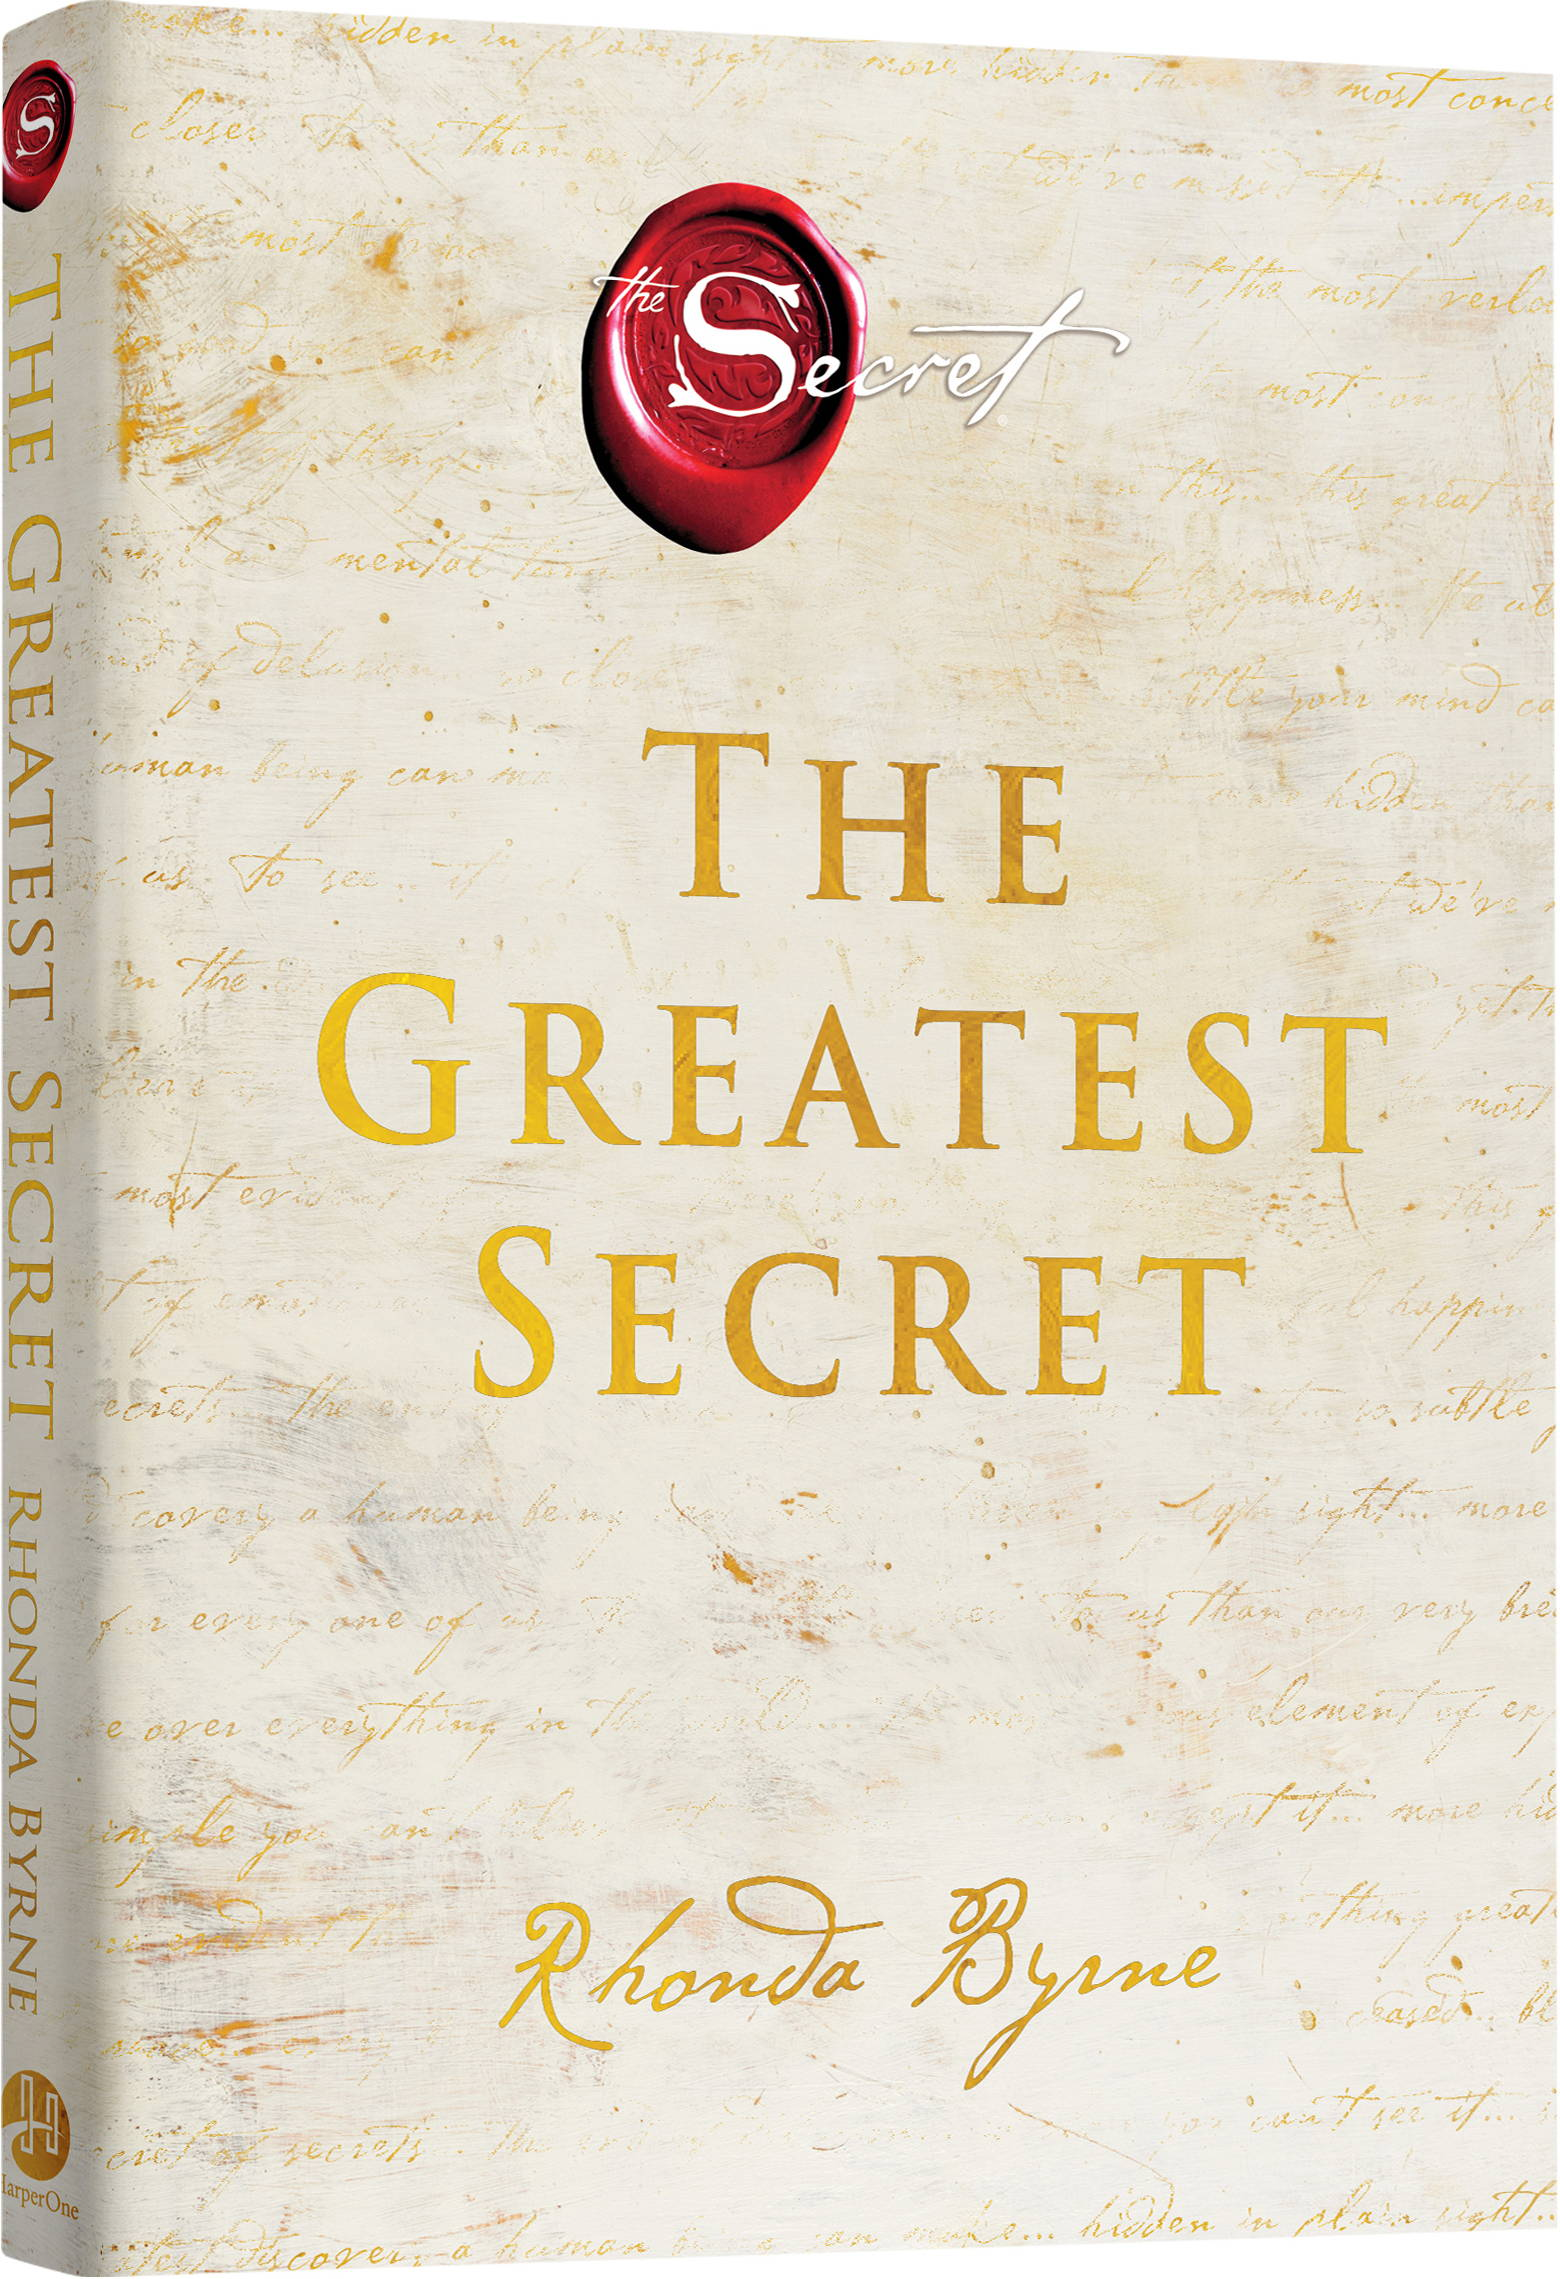 The. Greatest Secret